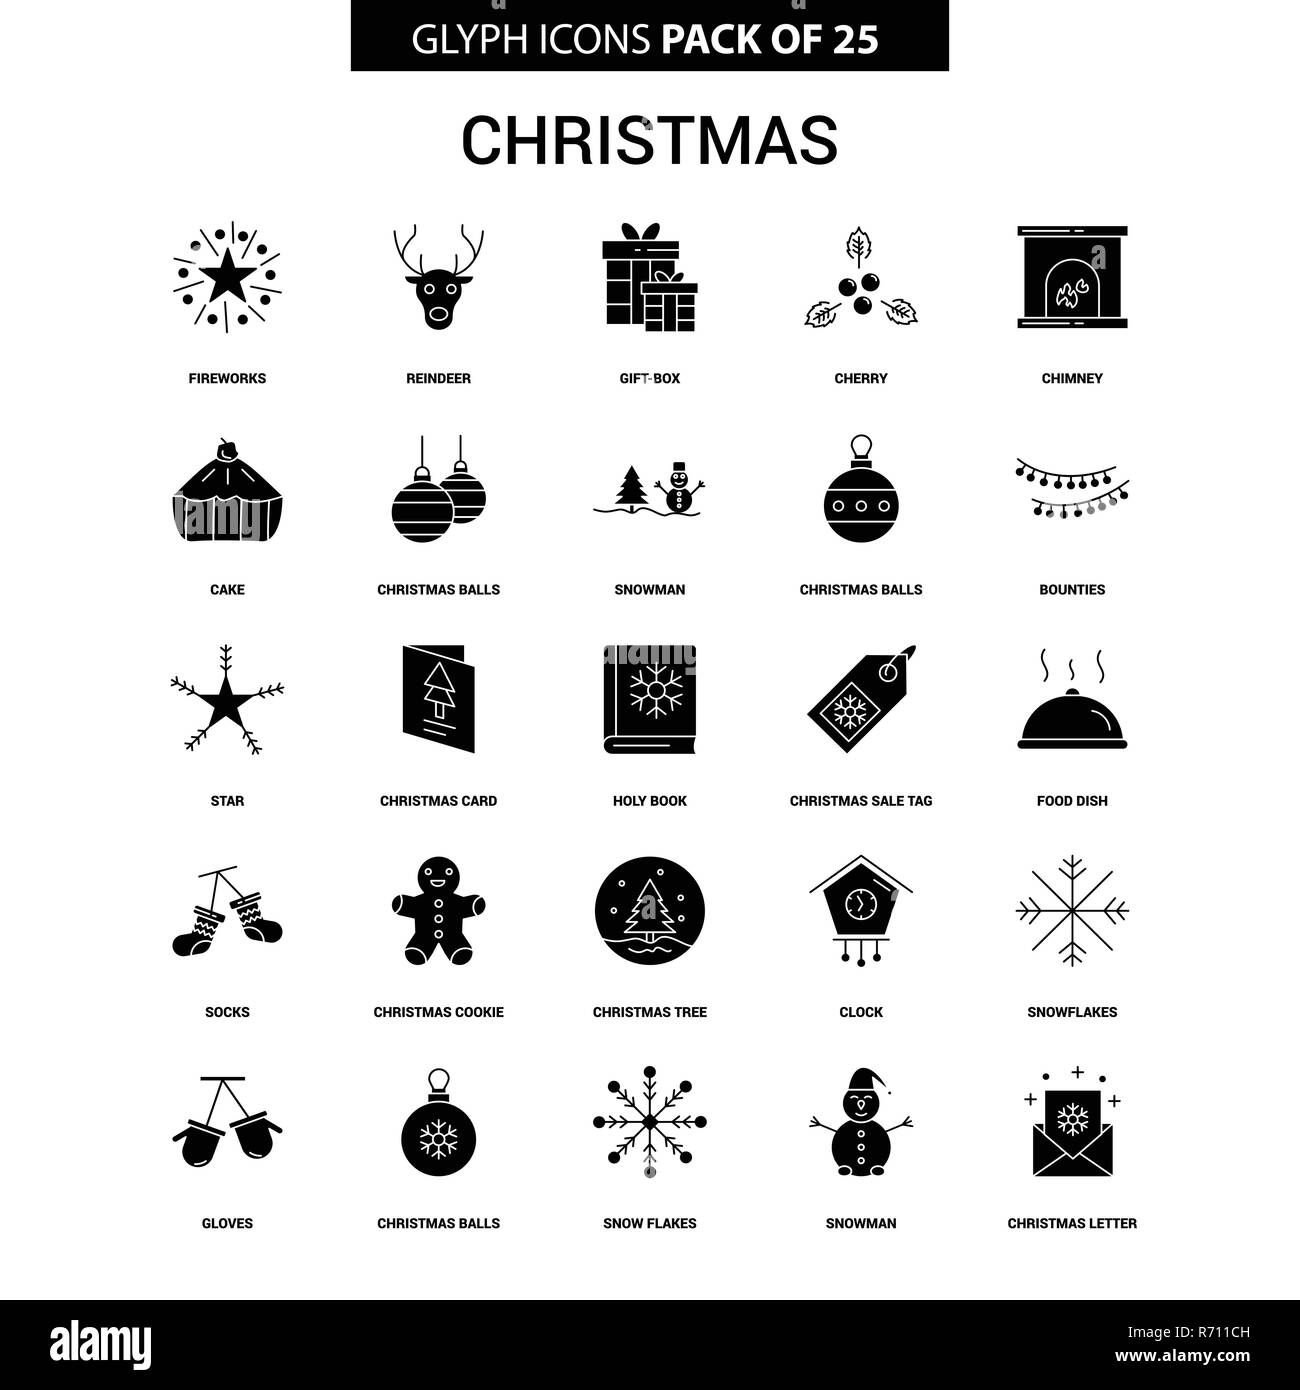 Christmas Gift Tag Black and White Stock Photos & Images - Alamy